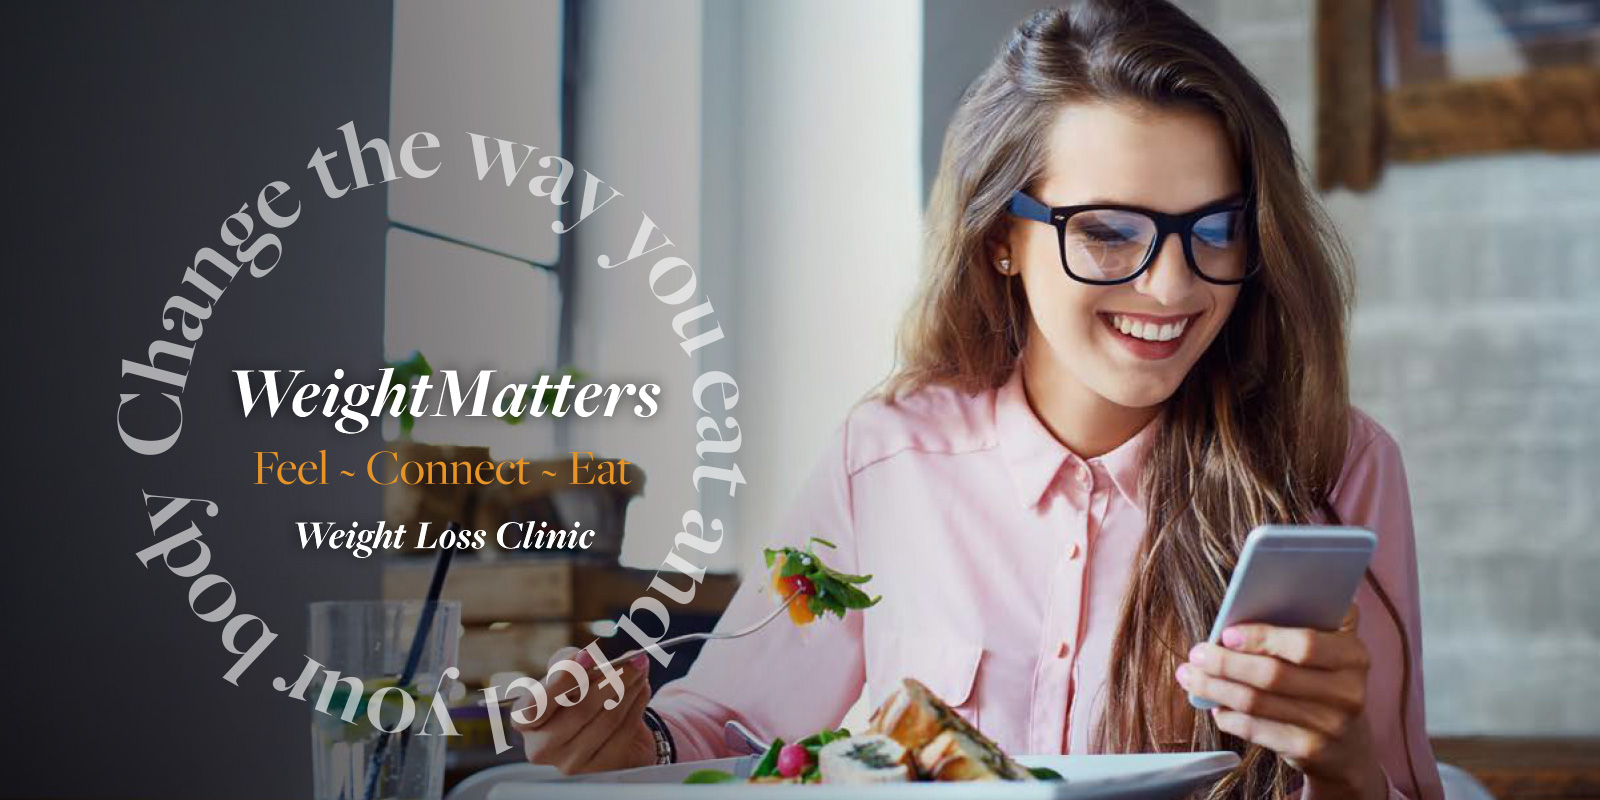 WeightMatters - Feel - Connect - Eat - at Weight Loss Clinic